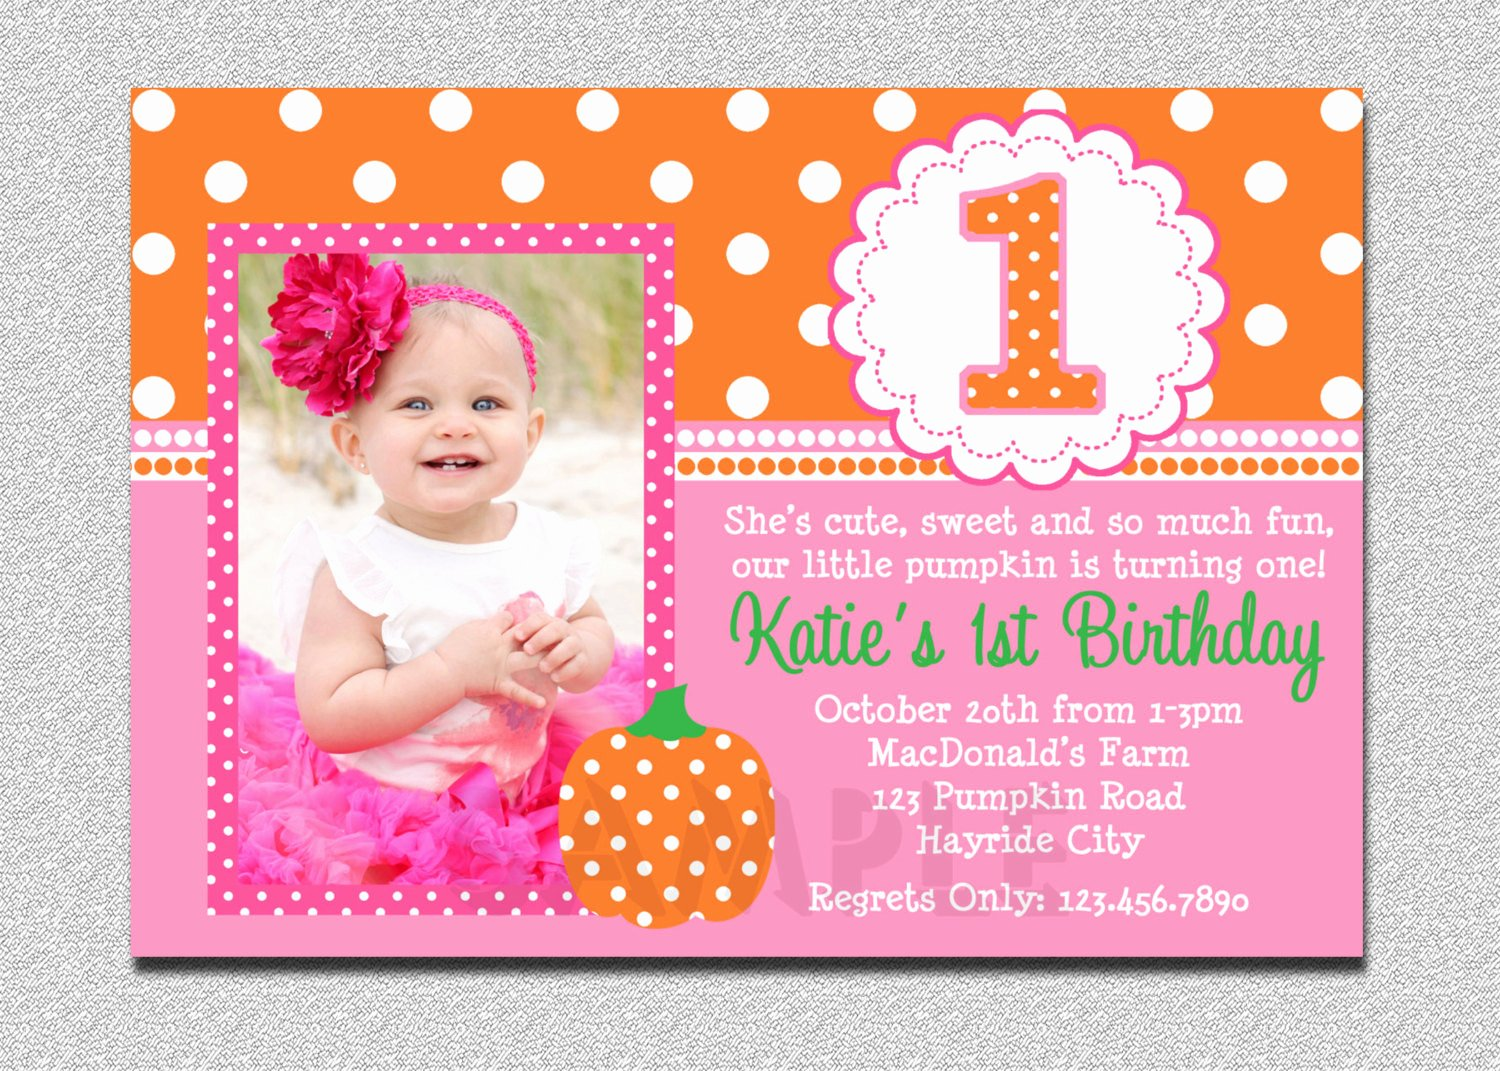 1st Birthday Invitation Template Lovely Free Templates for Birthday Invitations